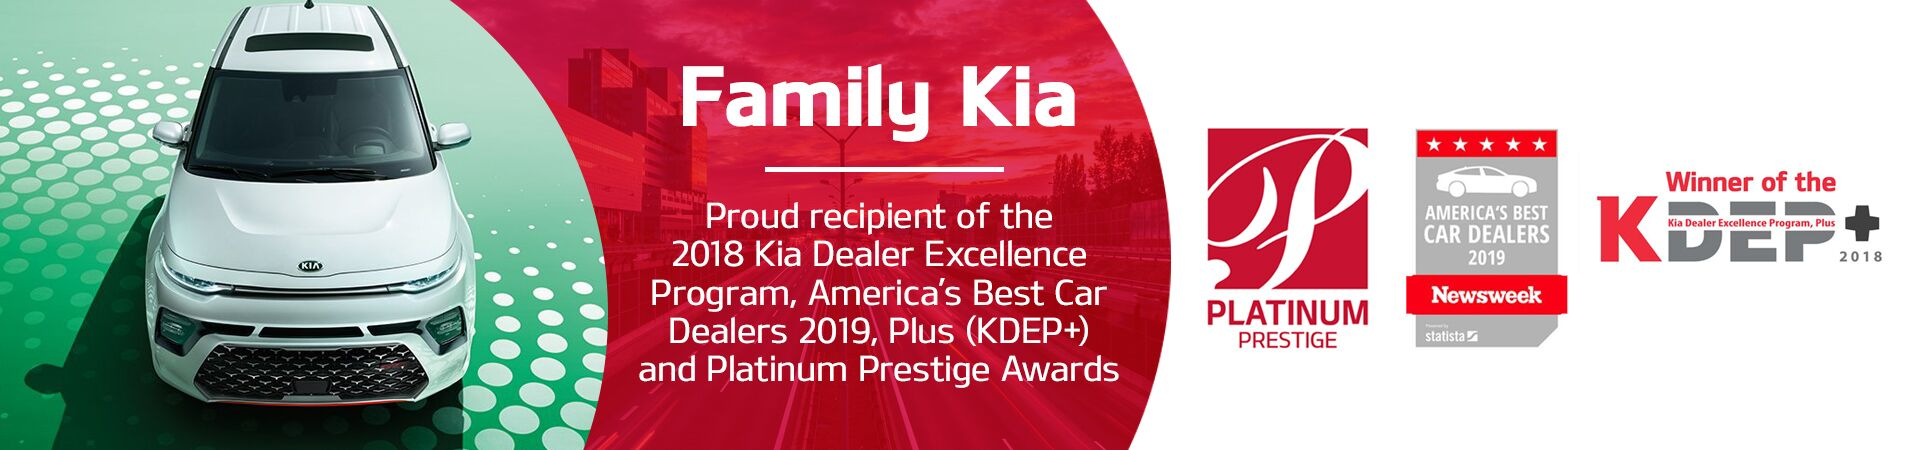 Why Buy from Family Kia